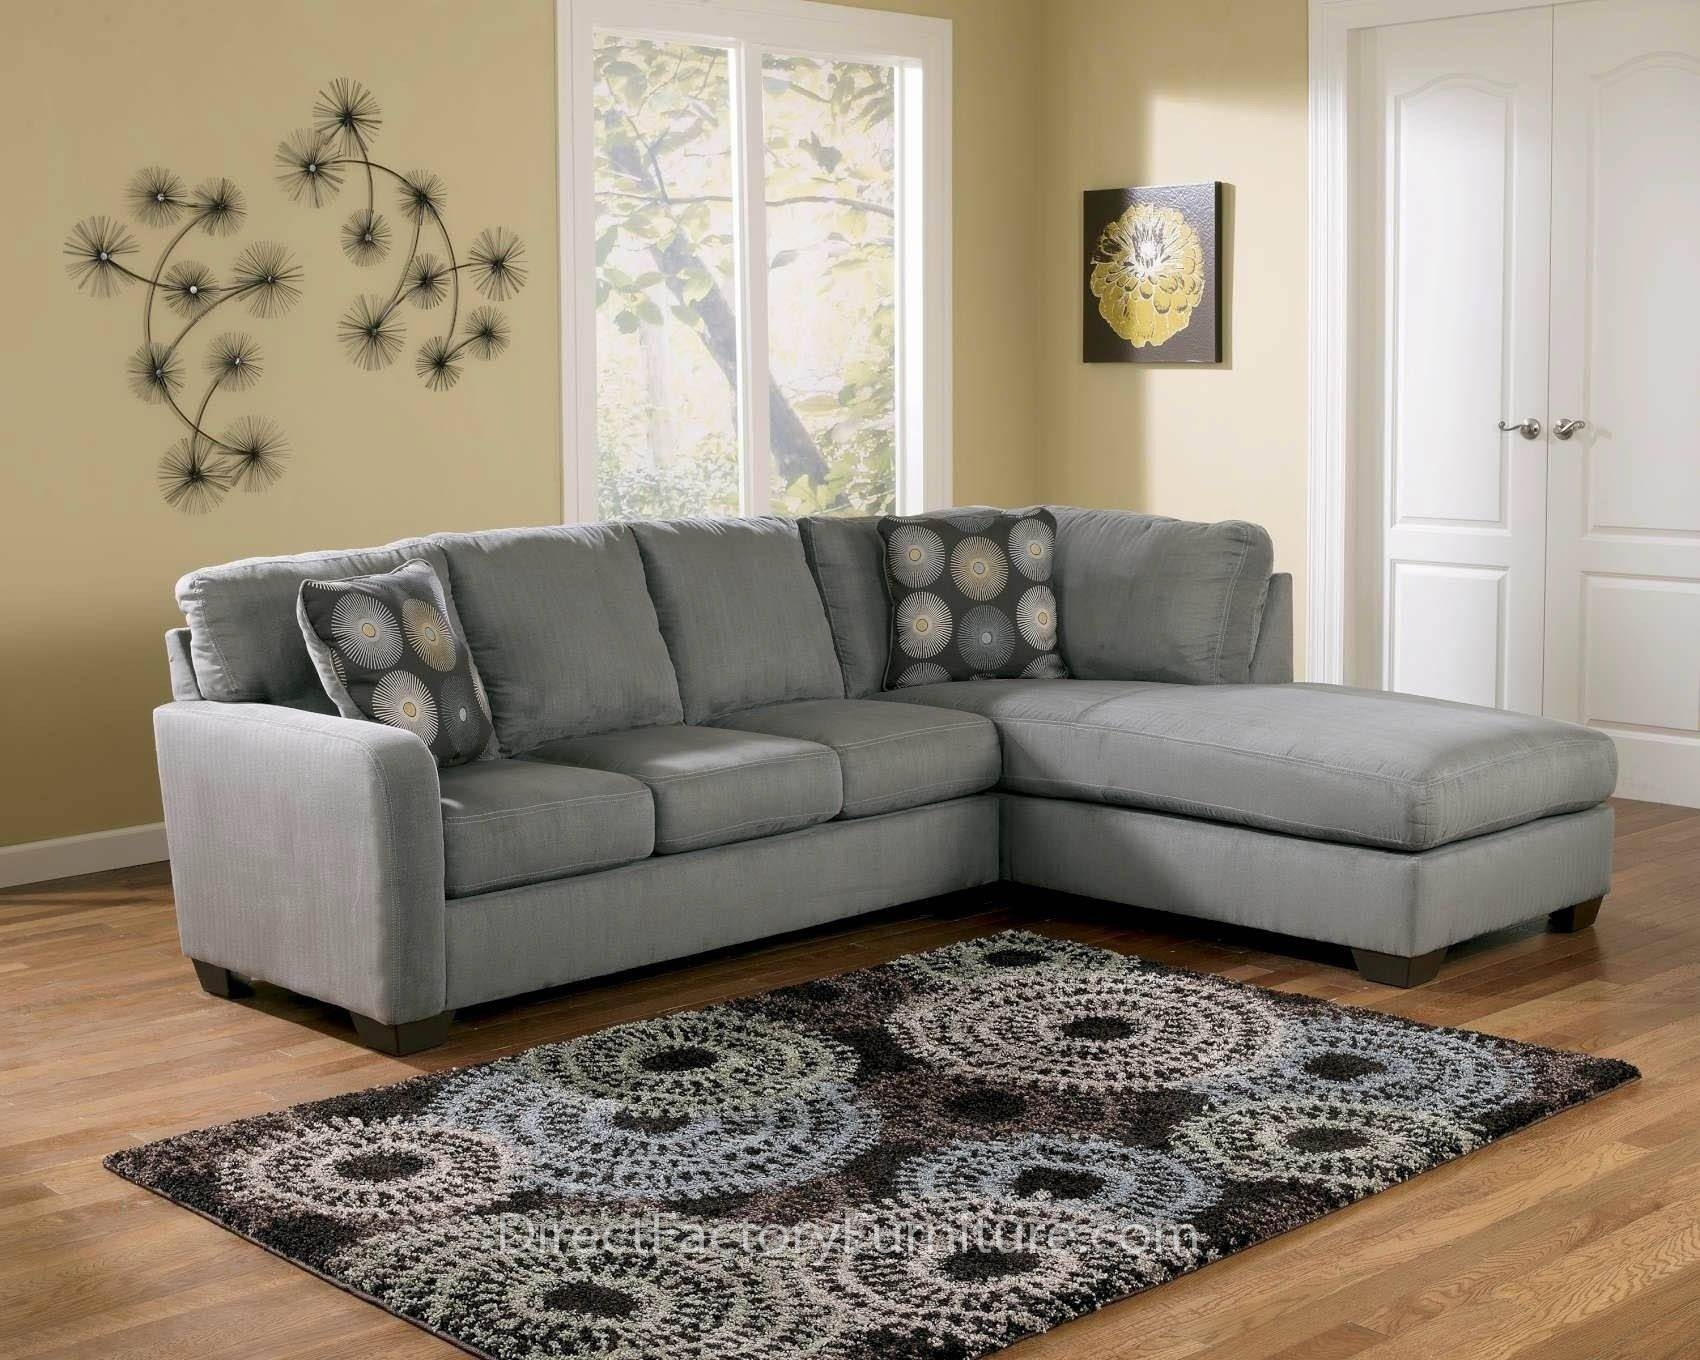 Furniture: L Shaped Sofa | L Shaped Sofa | Sectional Sofa Grey for 7 Seat Sectional Sofa (Image 6 of 30)